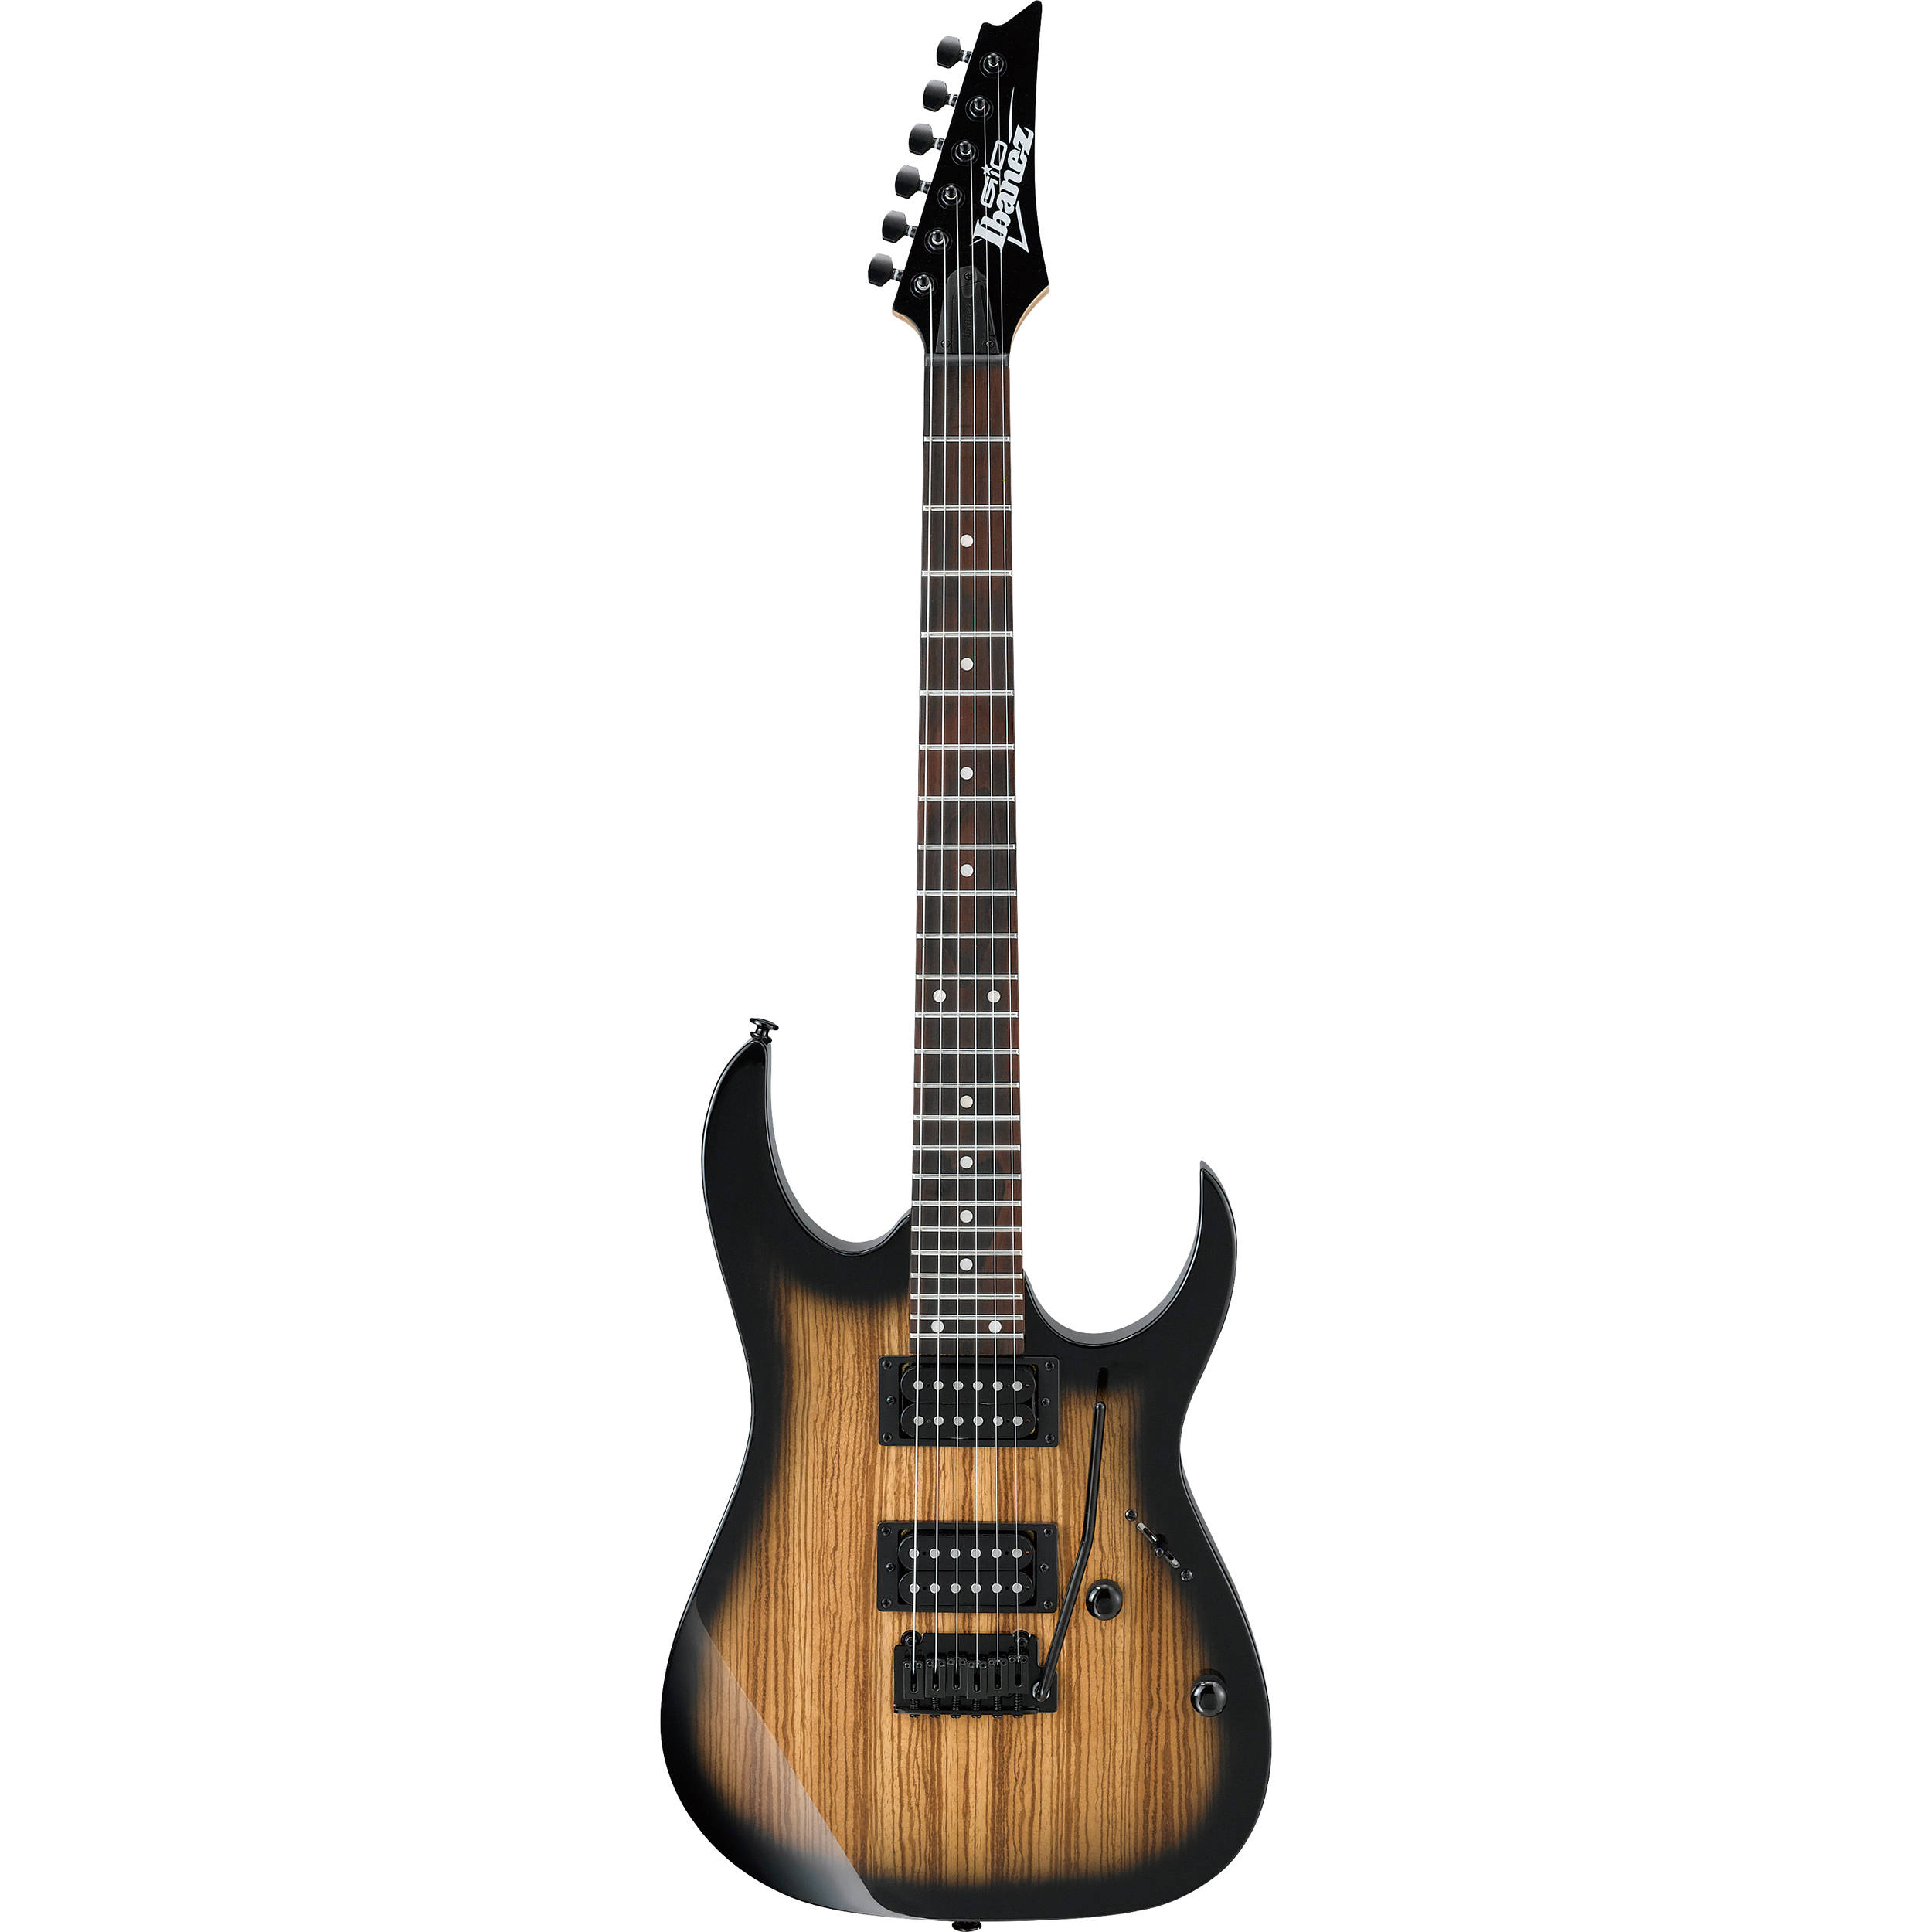 ibanez grg120zw gio series electric guitar grg120zwngt b h photo. Black Bedroom Furniture Sets. Home Design Ideas